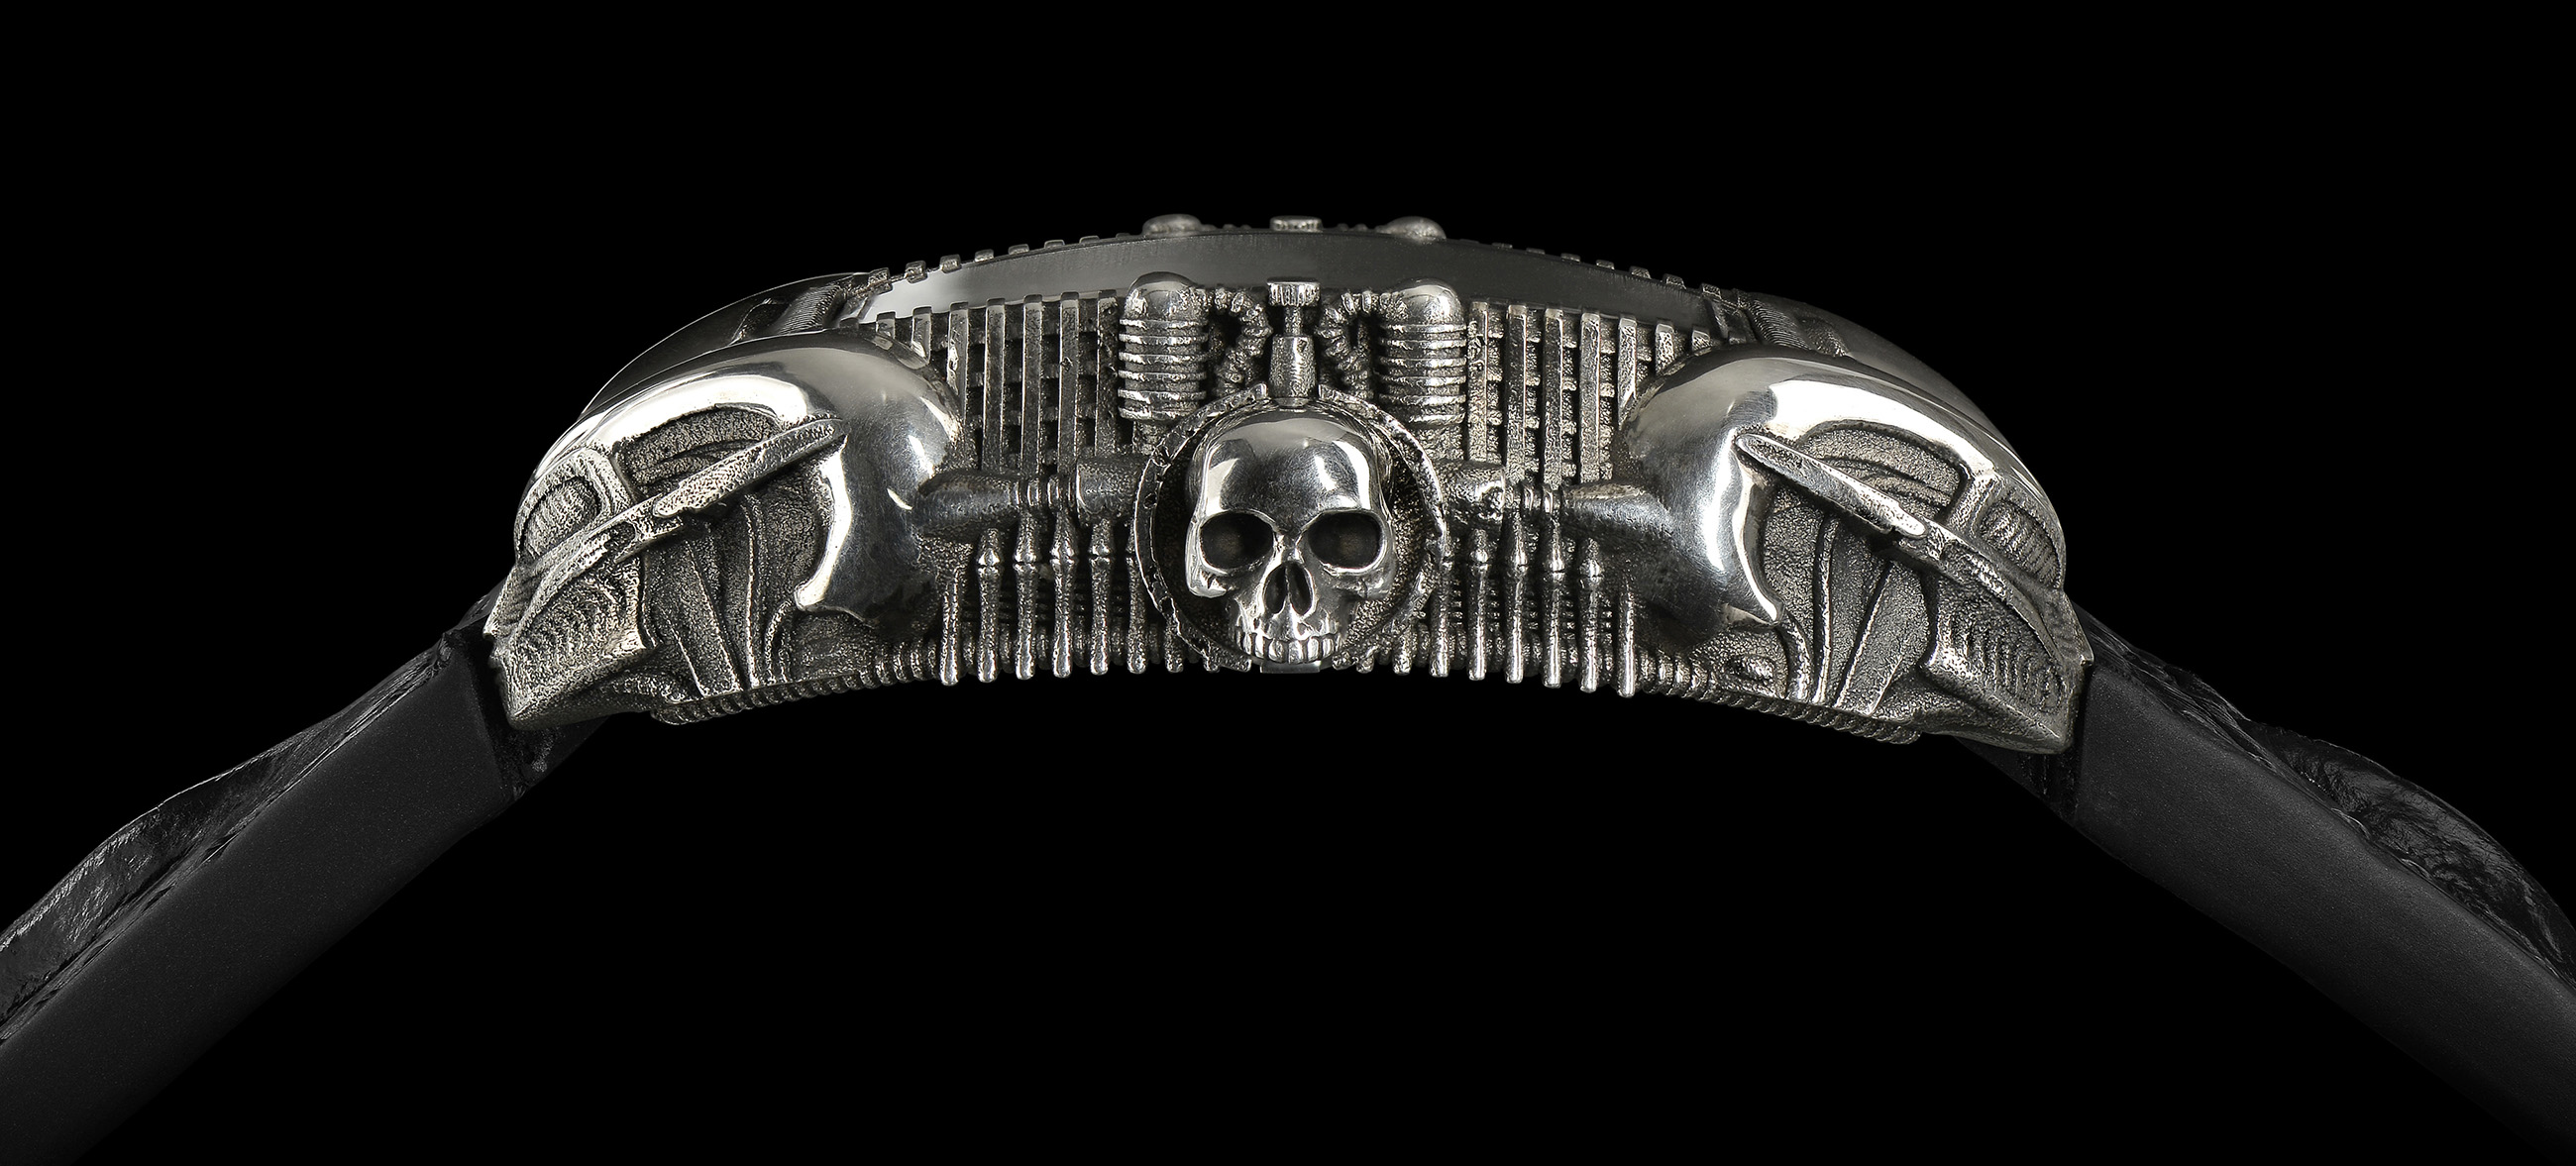 Agonium_In_Memorian_HR_Giger_HD_crown_side copy